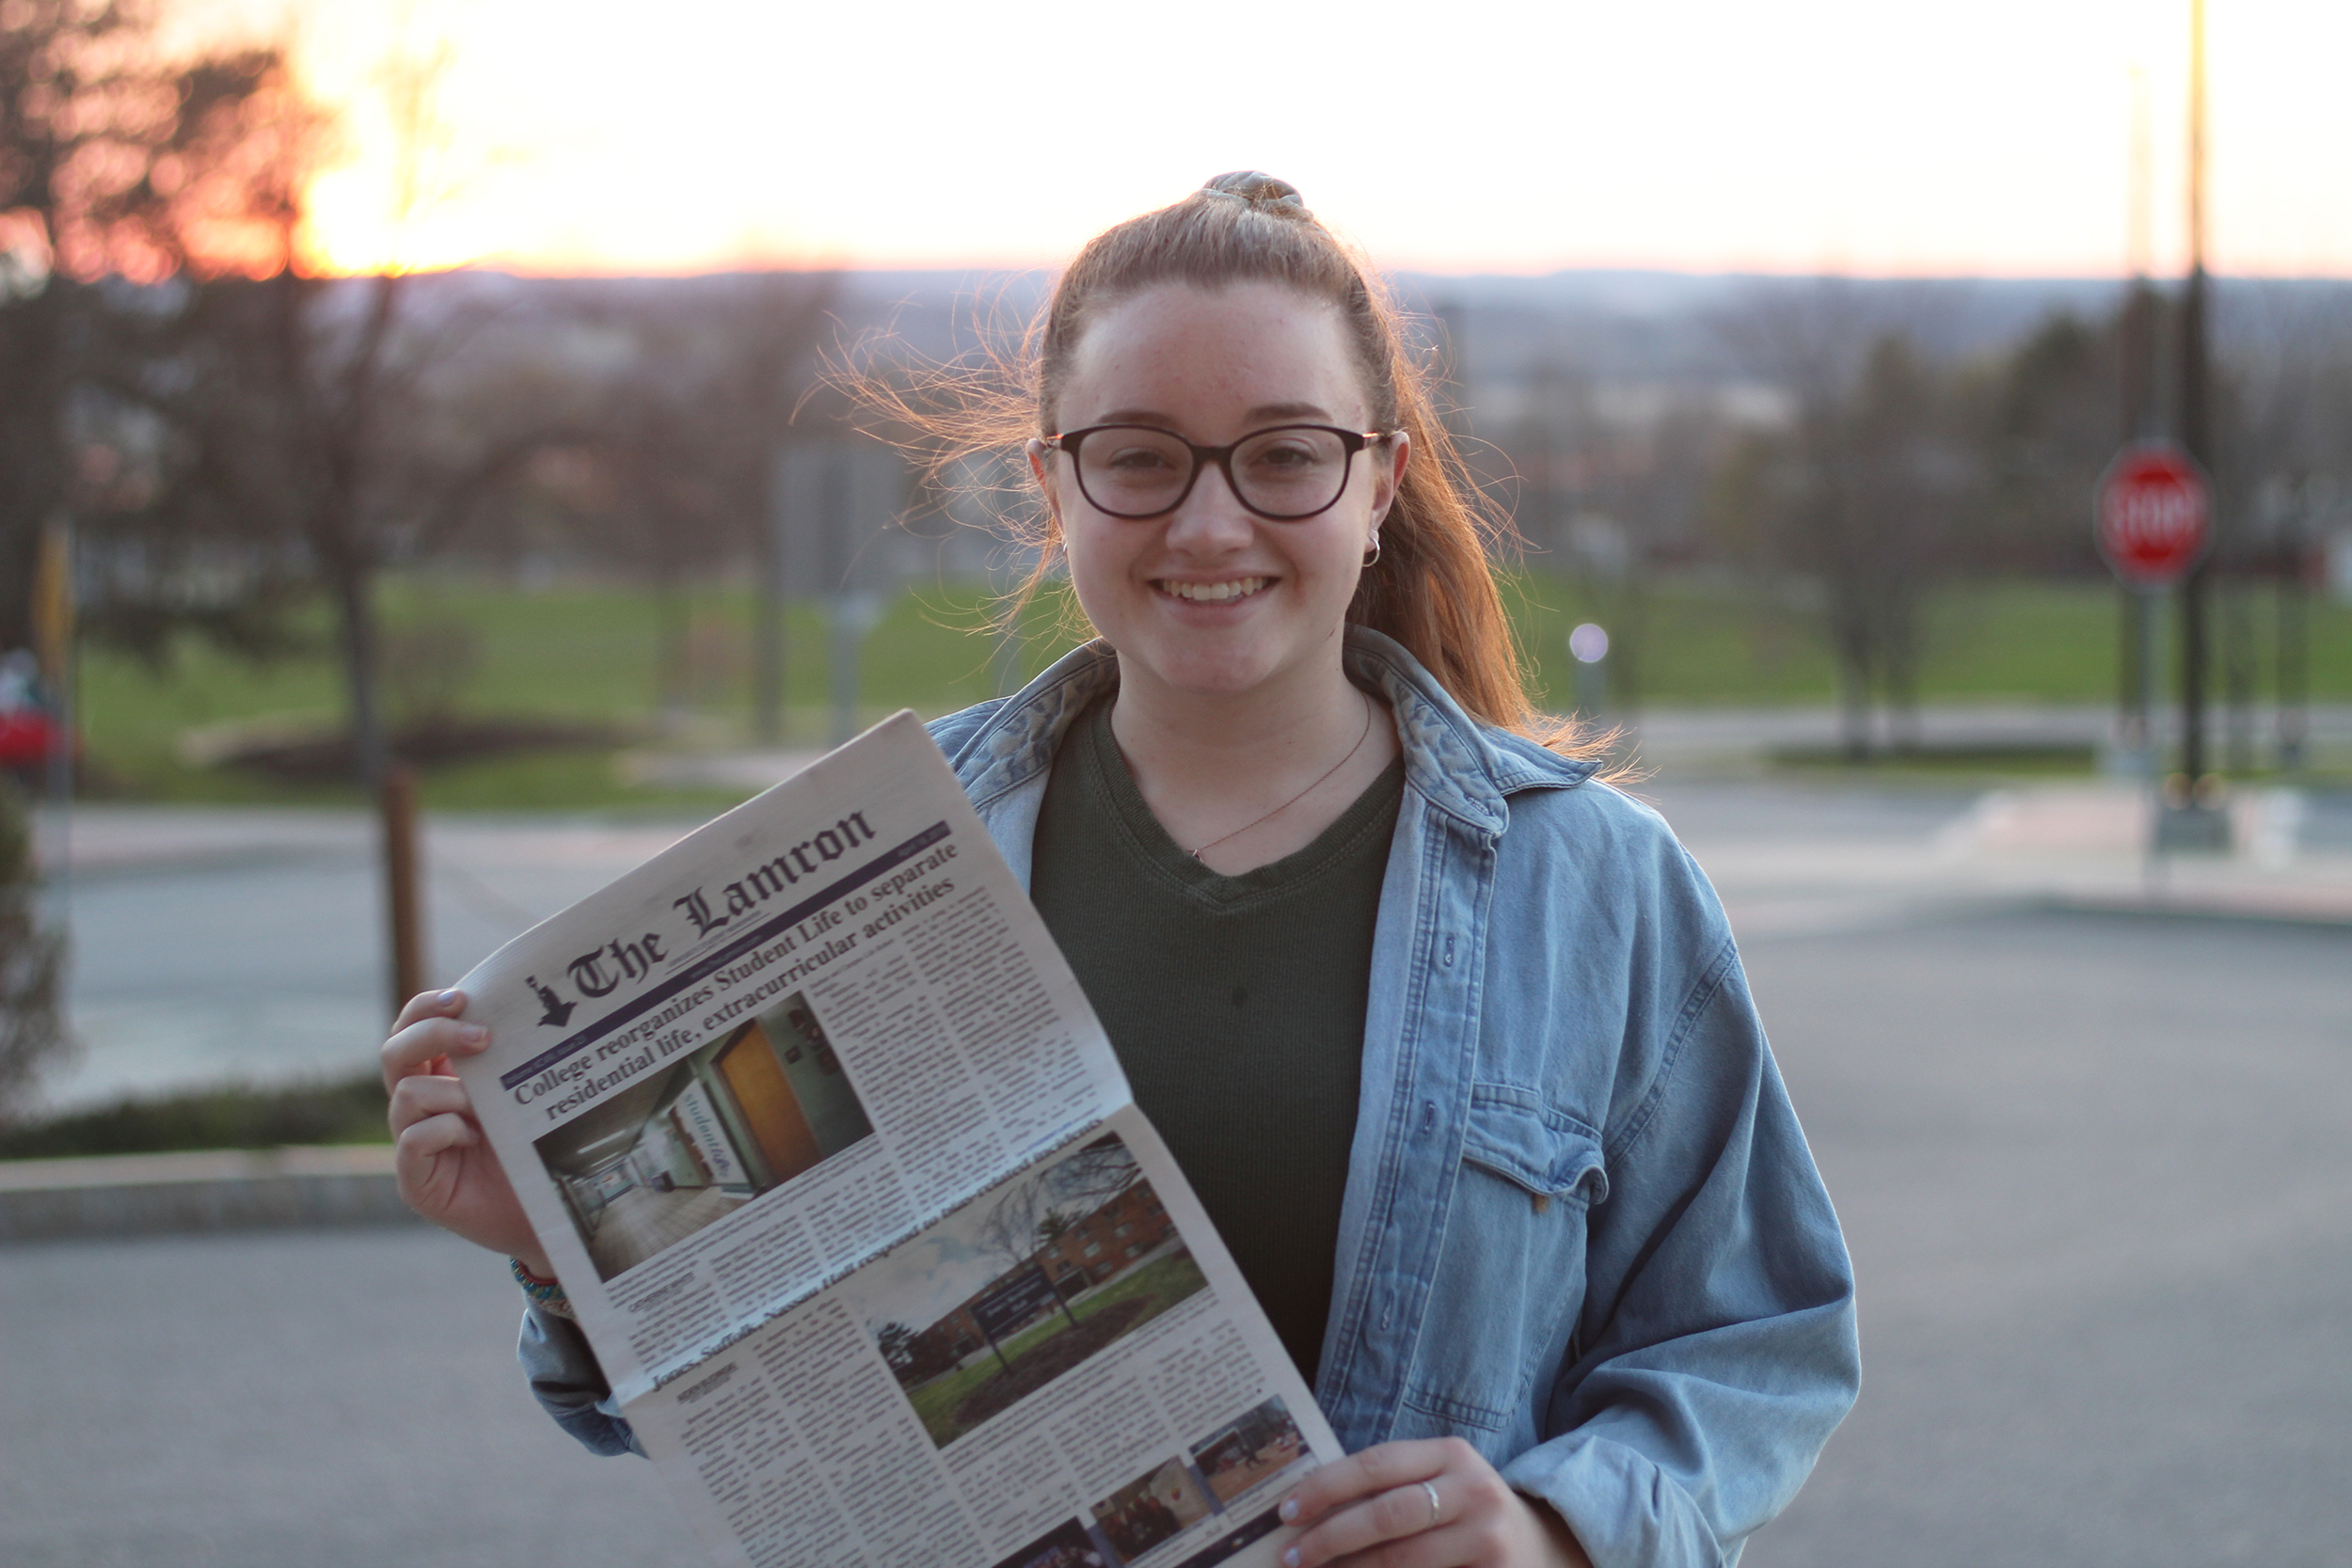 Junior Julia Skeval (pictured above) will be seizing the editor-in-chief role for the 2019-2020 school year after holding multiple positions within The Lamron throughout her college career. Skeval is looking forward to building The Lamron's reputation and to getting to know the new e-board (Catherine White/outgoing Editor-in-Chief).